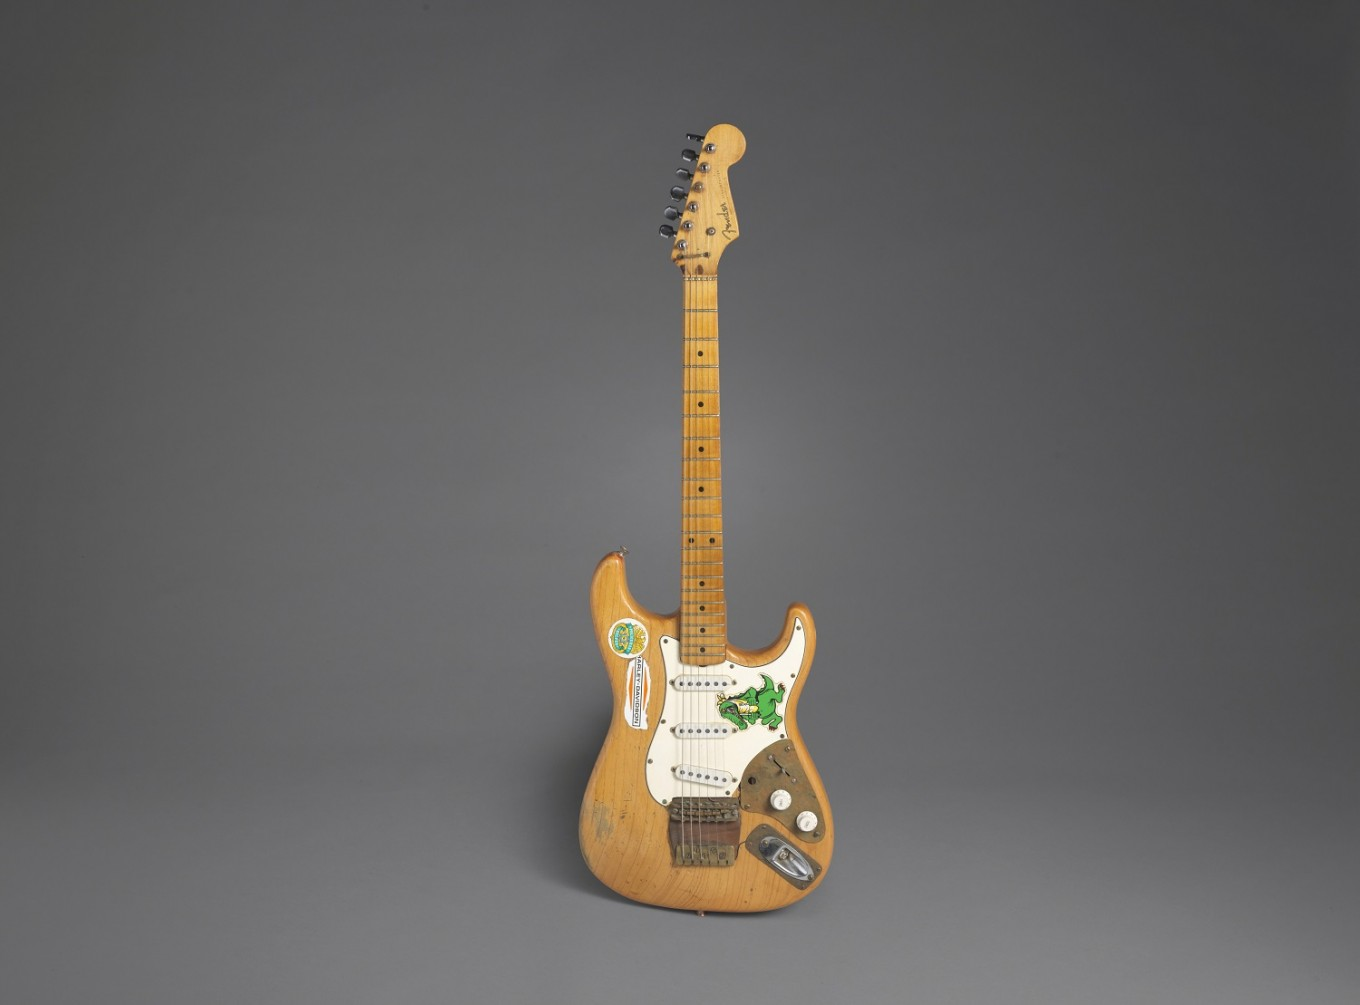 Jerry Garcia's Alligator guitar could sell for $400,000 at LA auction